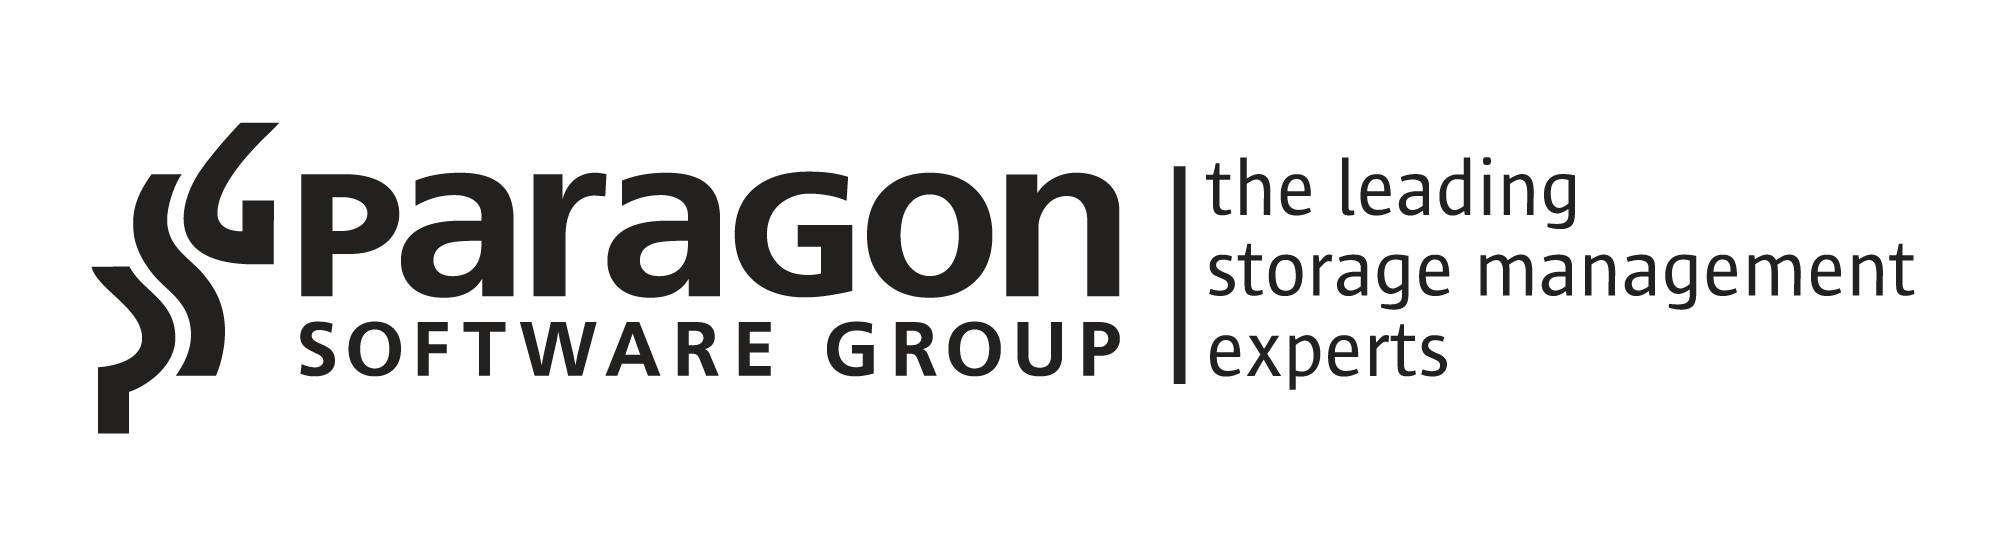 PARAGON Software Group - Welcome to the Press Room!